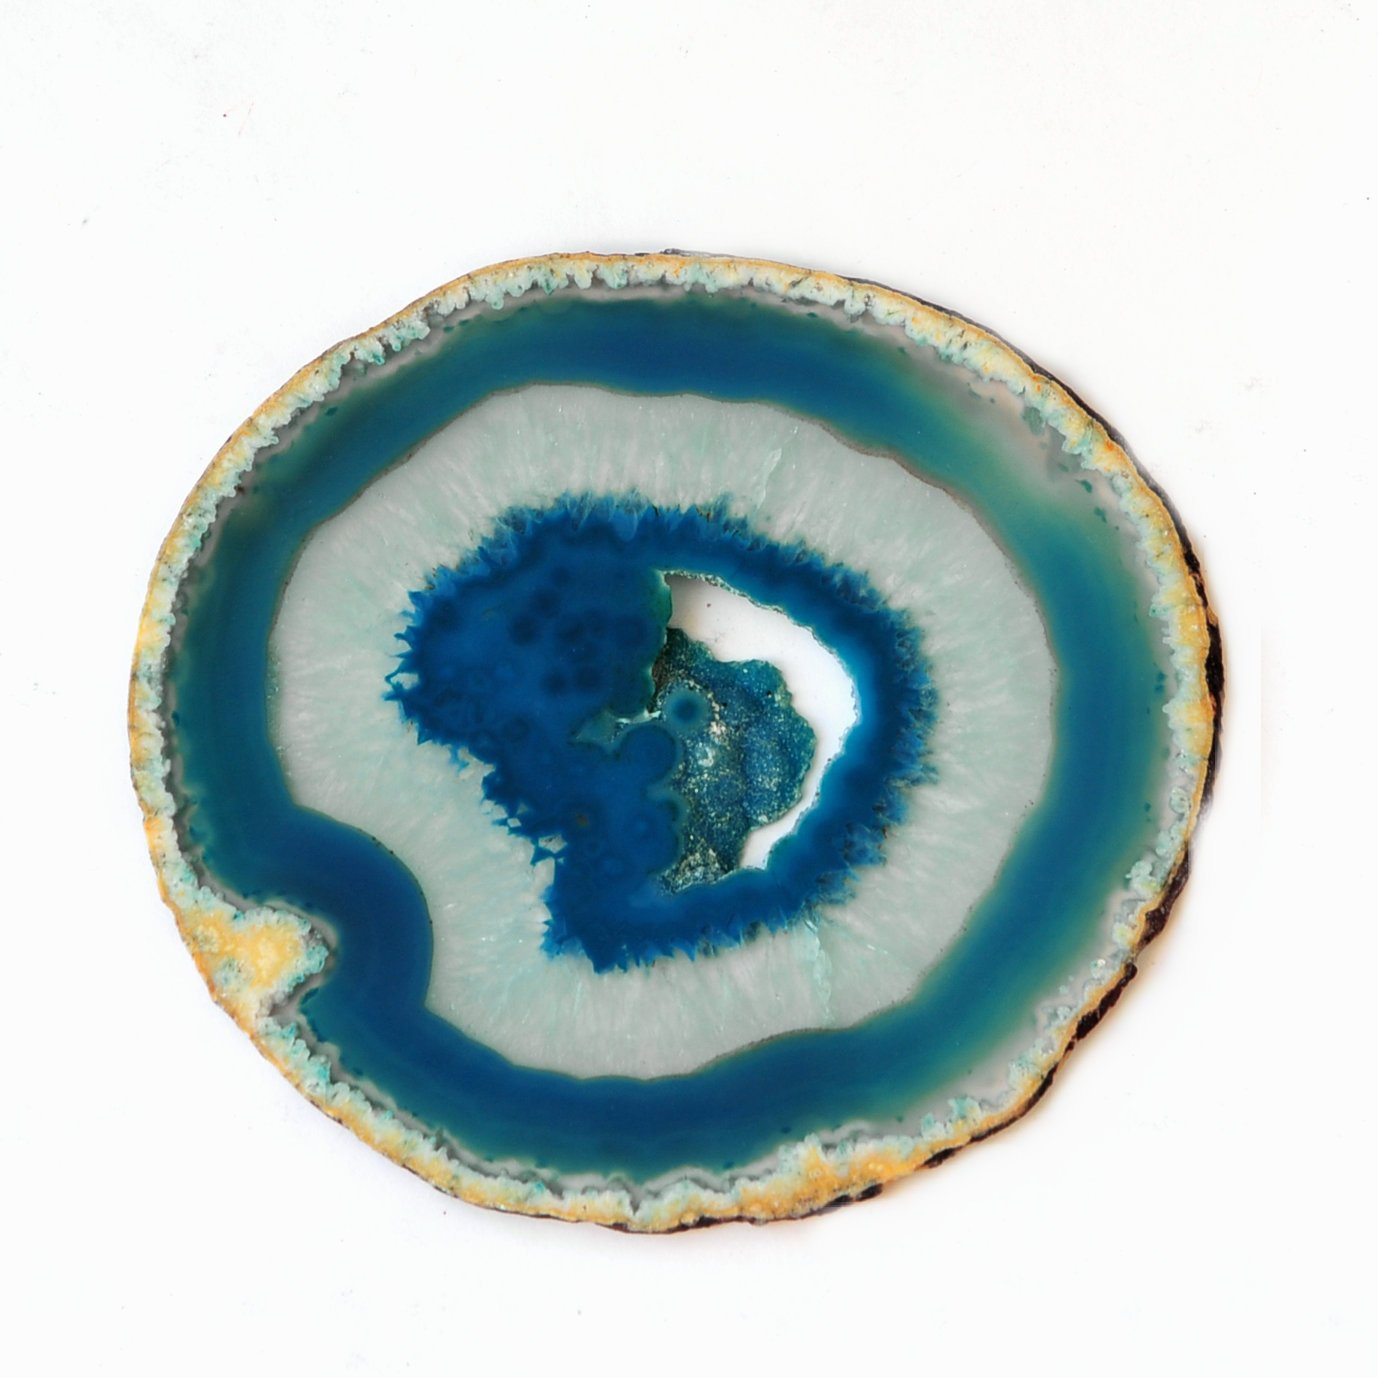 Amazon.com: Natural Sliced Dyed Agate Coaster with Rubber Bumper Set of 4 (Q.1  Teal, 3.5-4